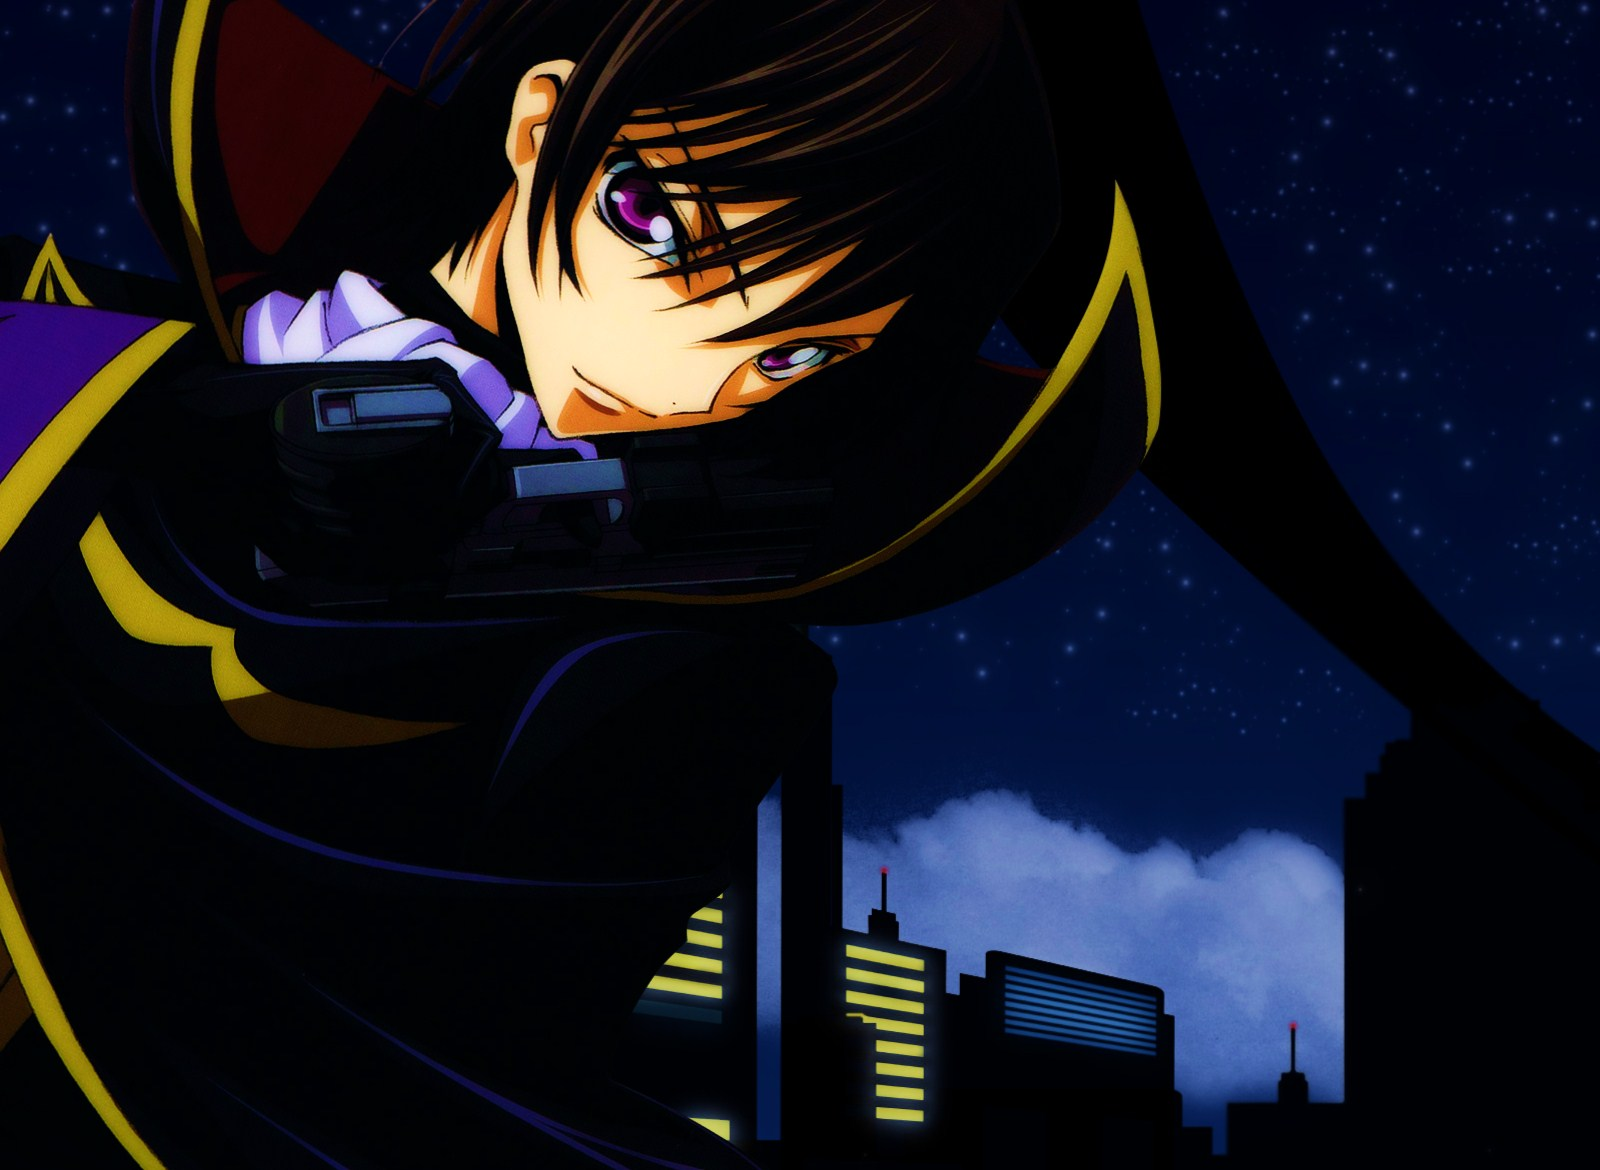 wallpaper lelouch - photo #40